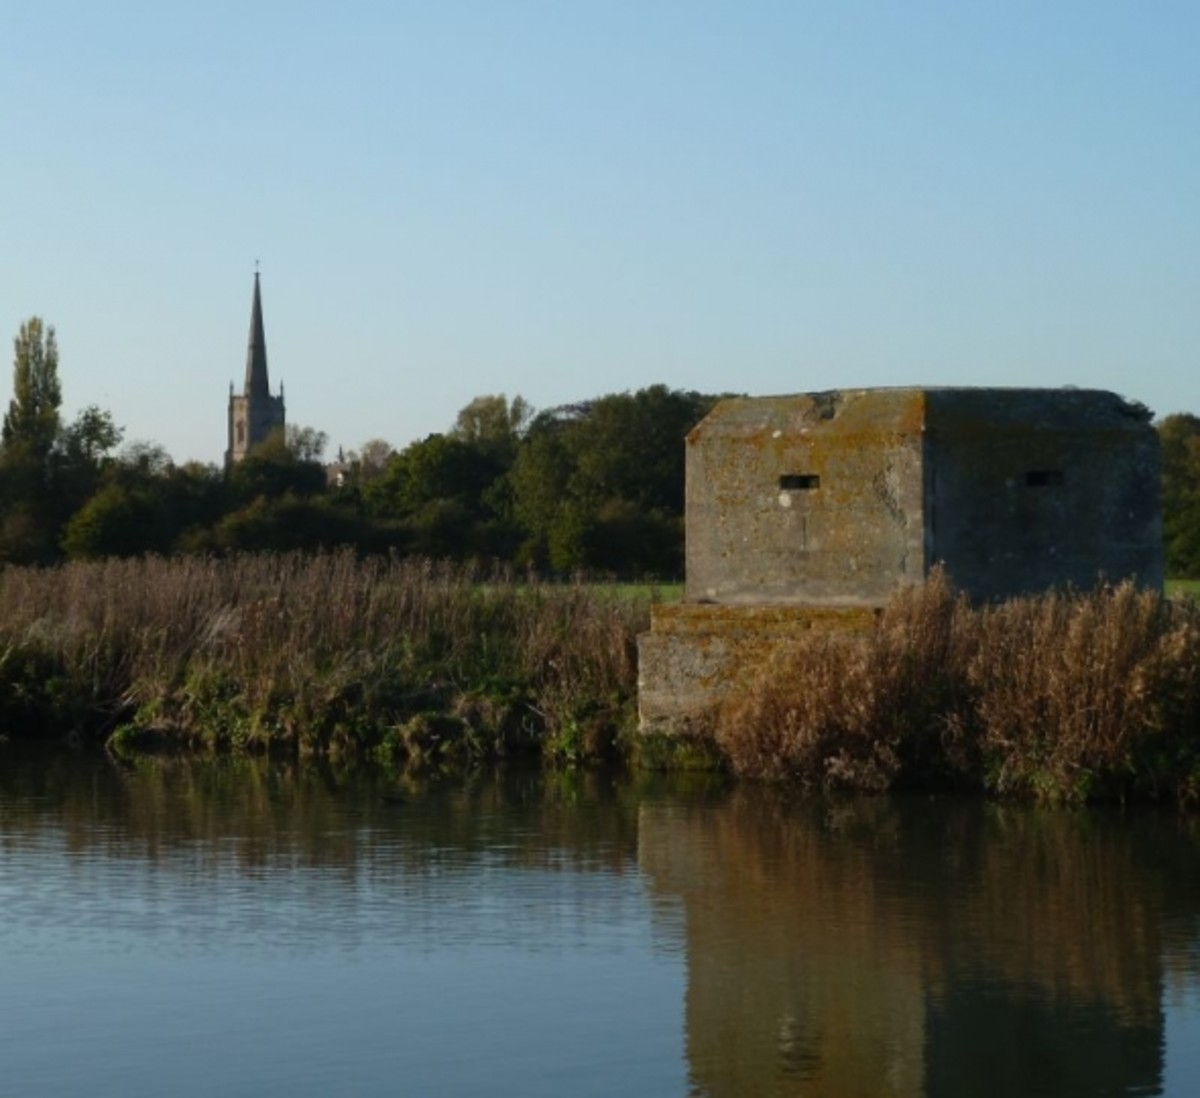 Pillbox at Lechlade view of  St Lawrence Church in distance